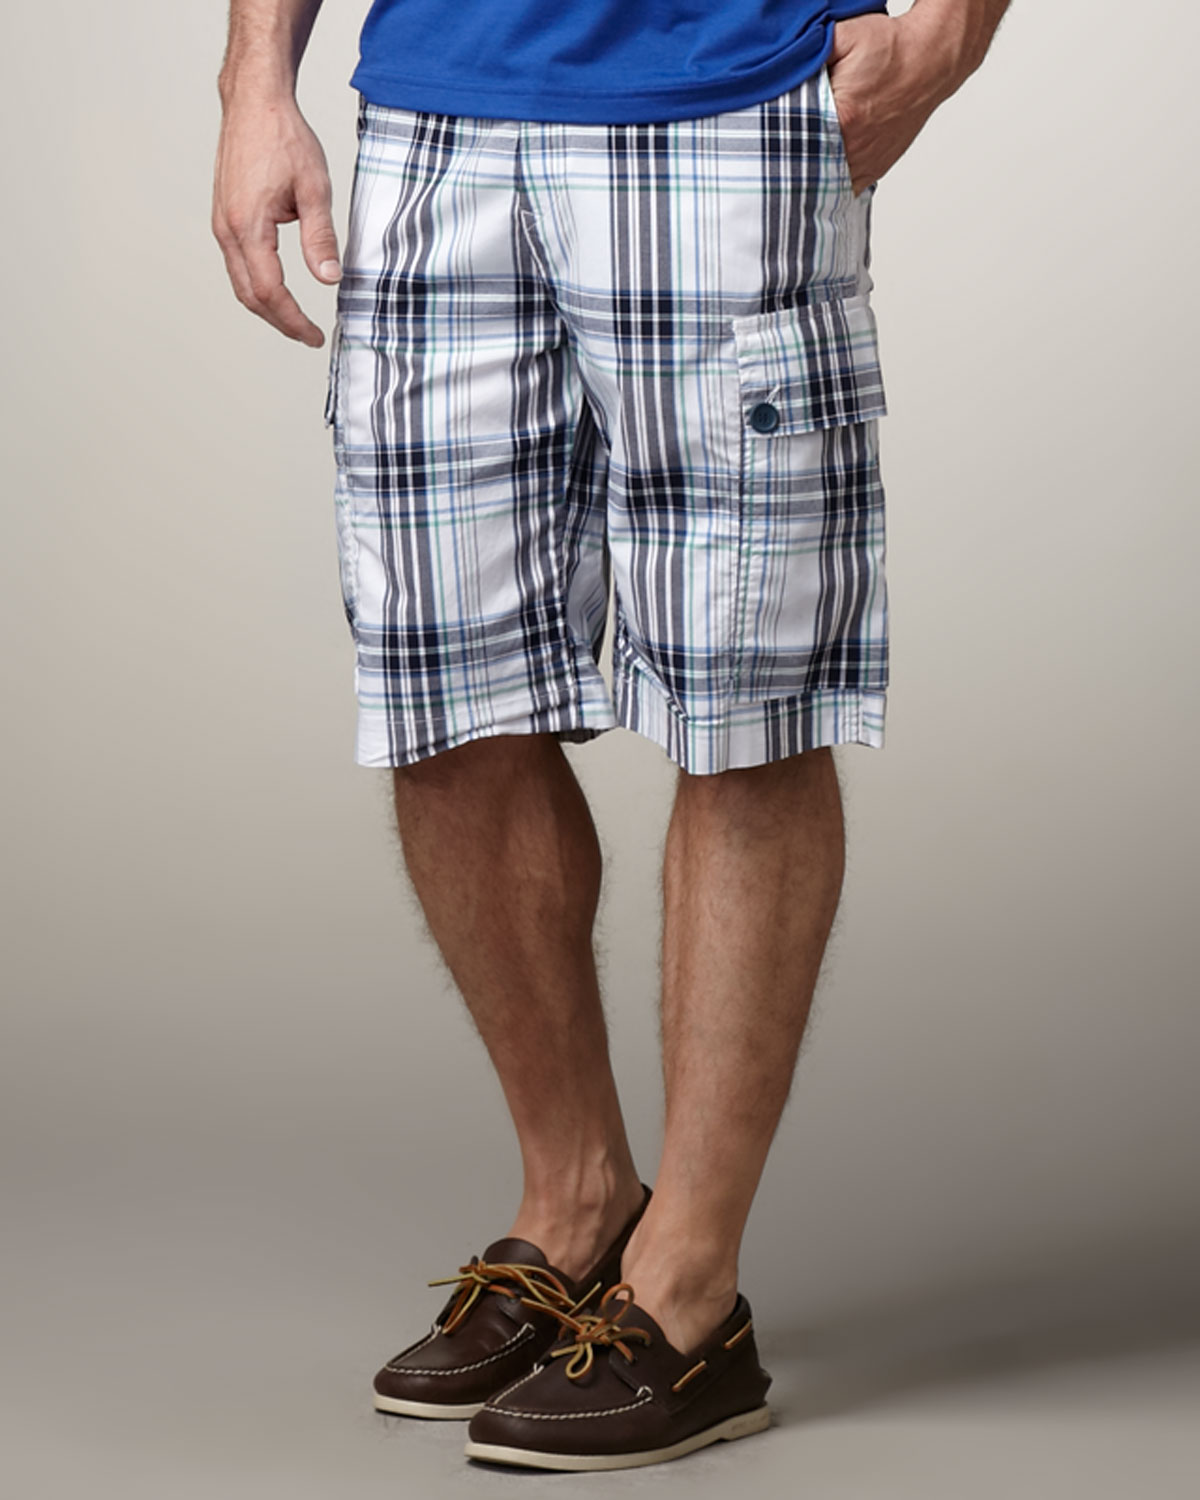 13eddefad6 Lacoste Plaid Cargo Shorts in White for Men - Lyst